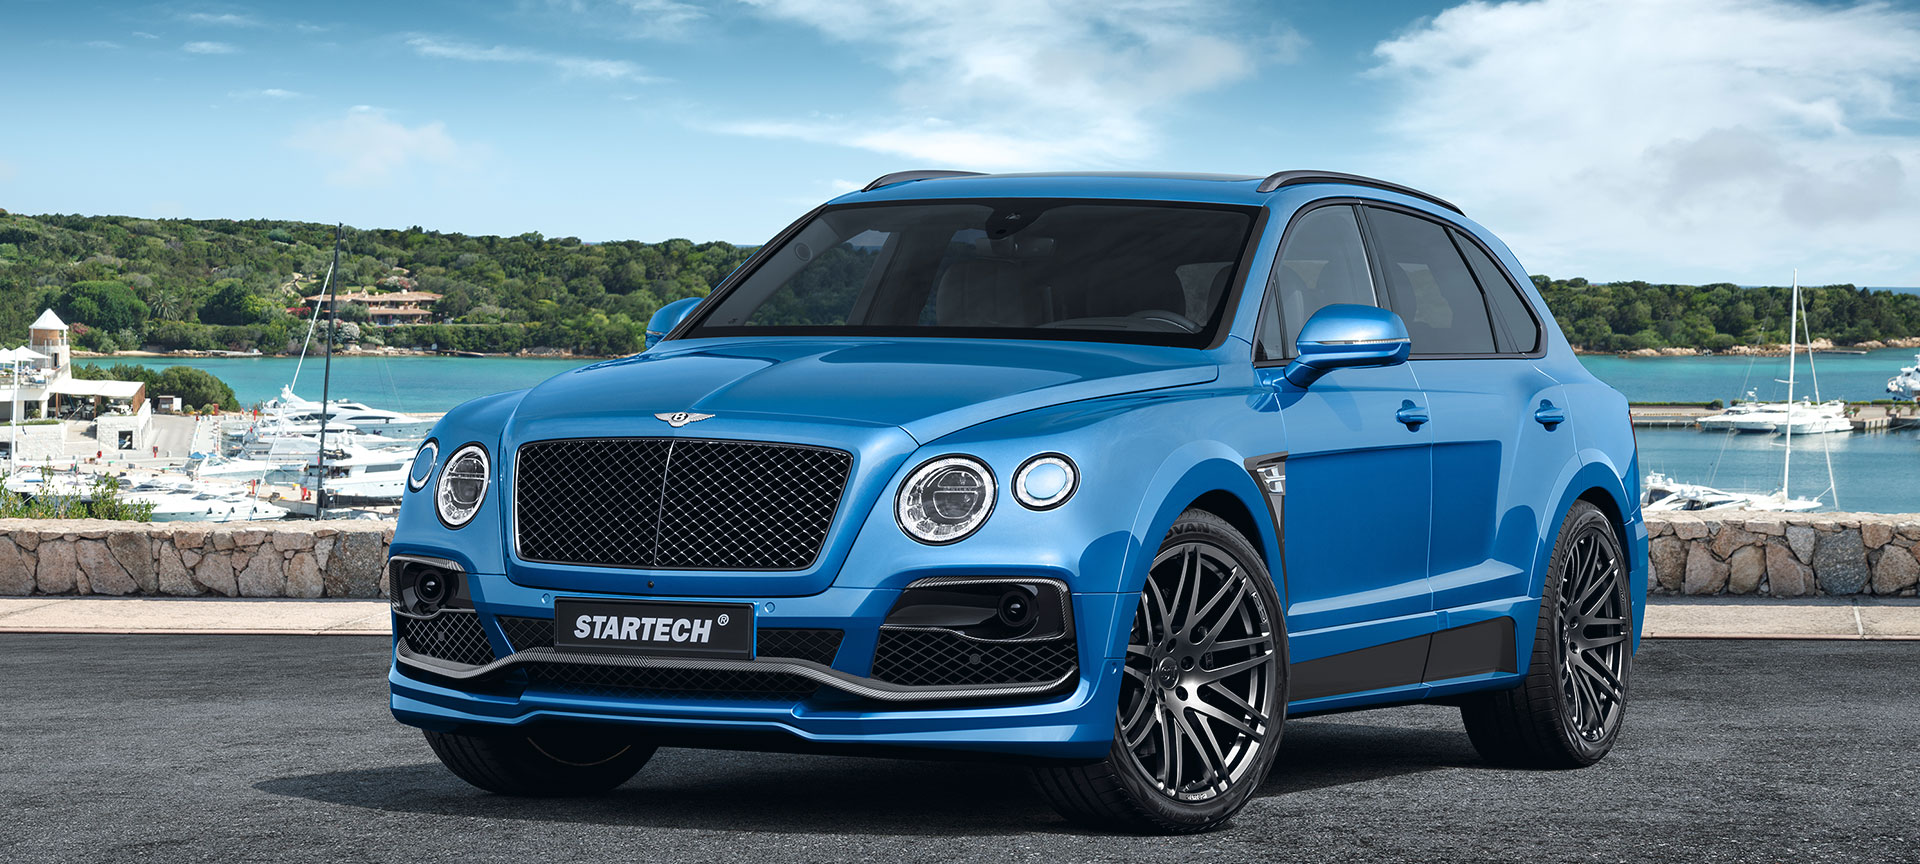 New Range Rover >> The first further refined Bentley Bentayga comes from STARTECH | STARTECH Refinement